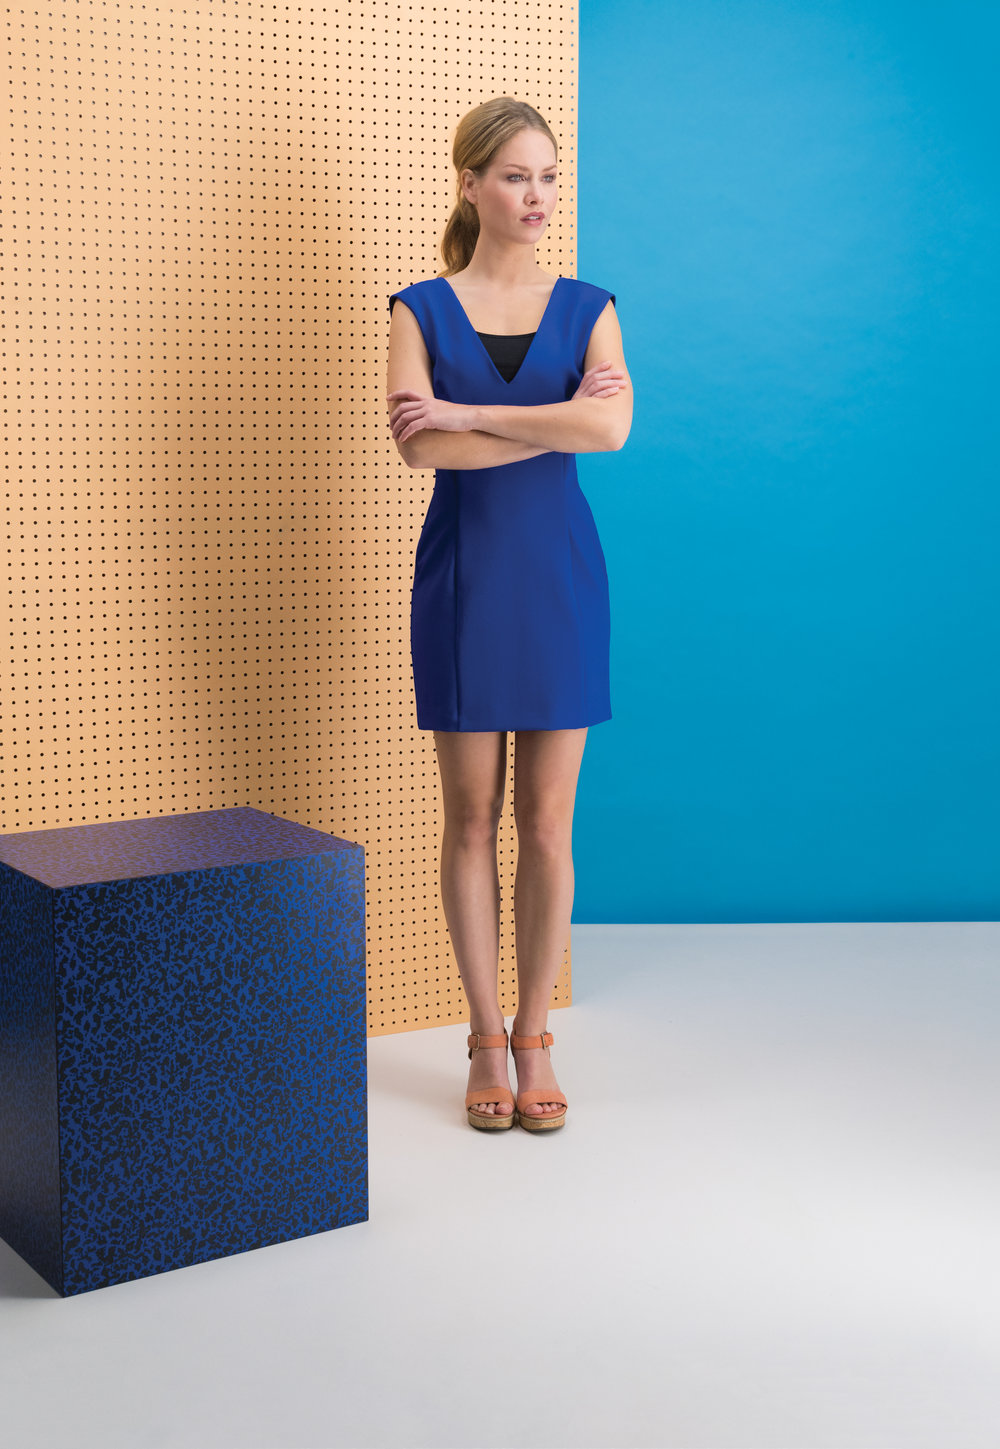 Marianne-blue dress-blue set.jpg